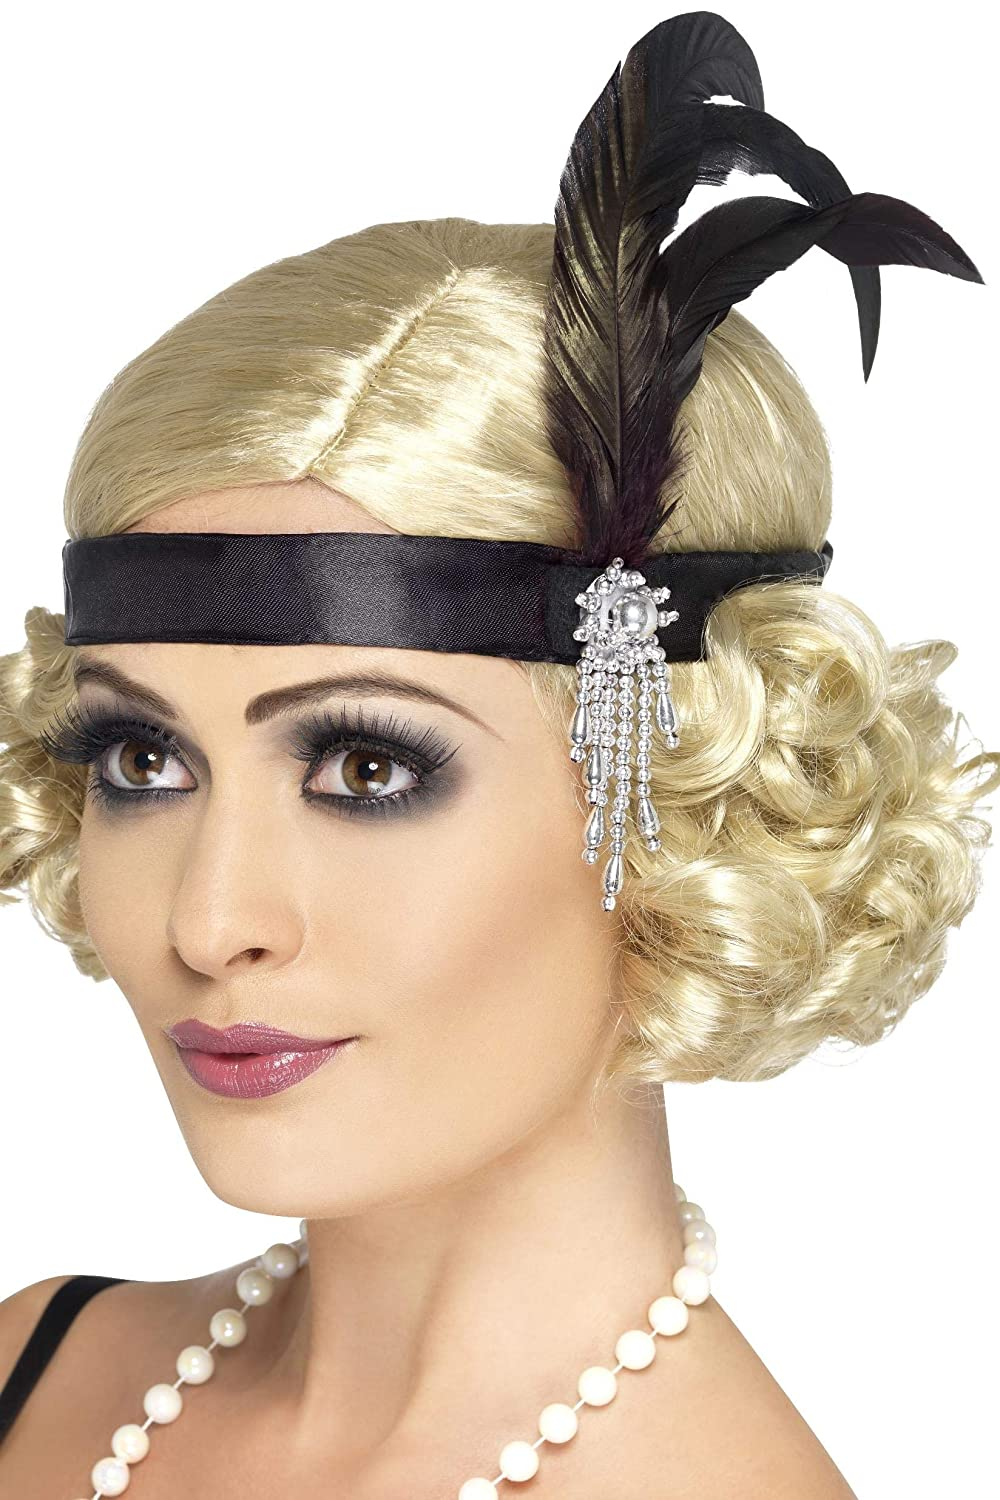 20's Charleston Costume Accessory Black Satin Headband One Size RH Smith & Sons LTD 23893 B000WNIZ8O